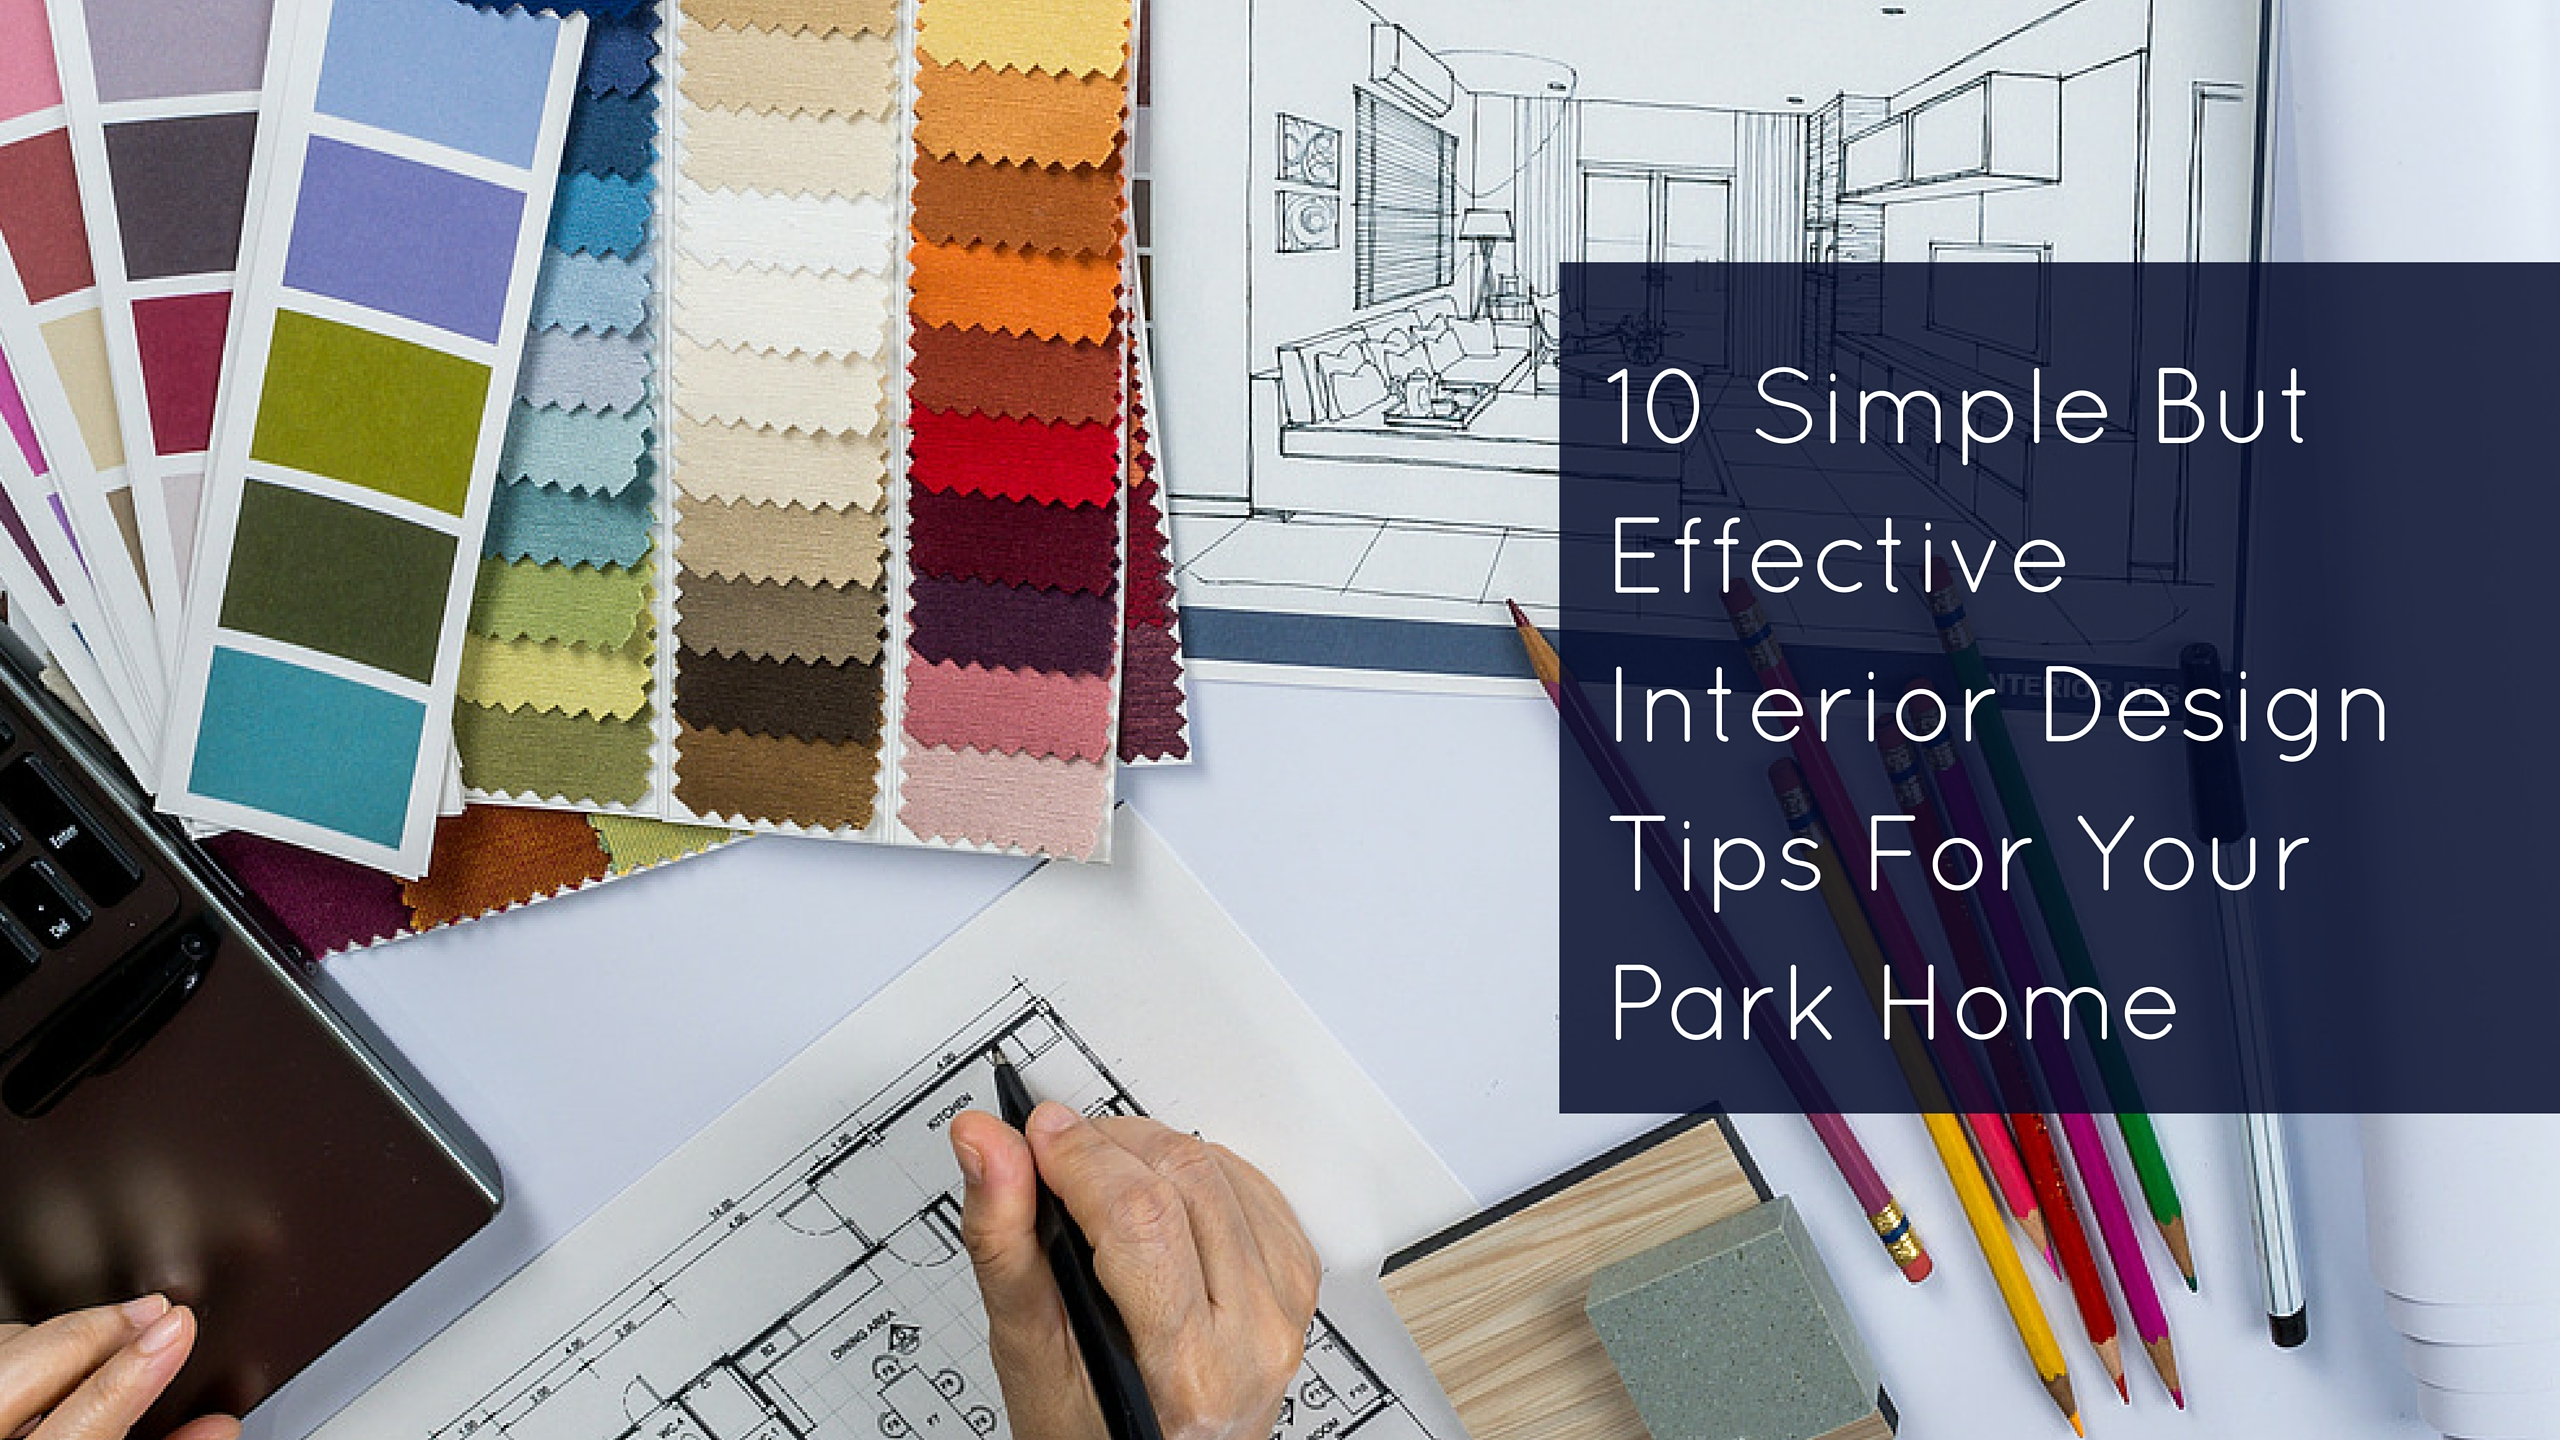 10 simple but effective interior design tips for your park home